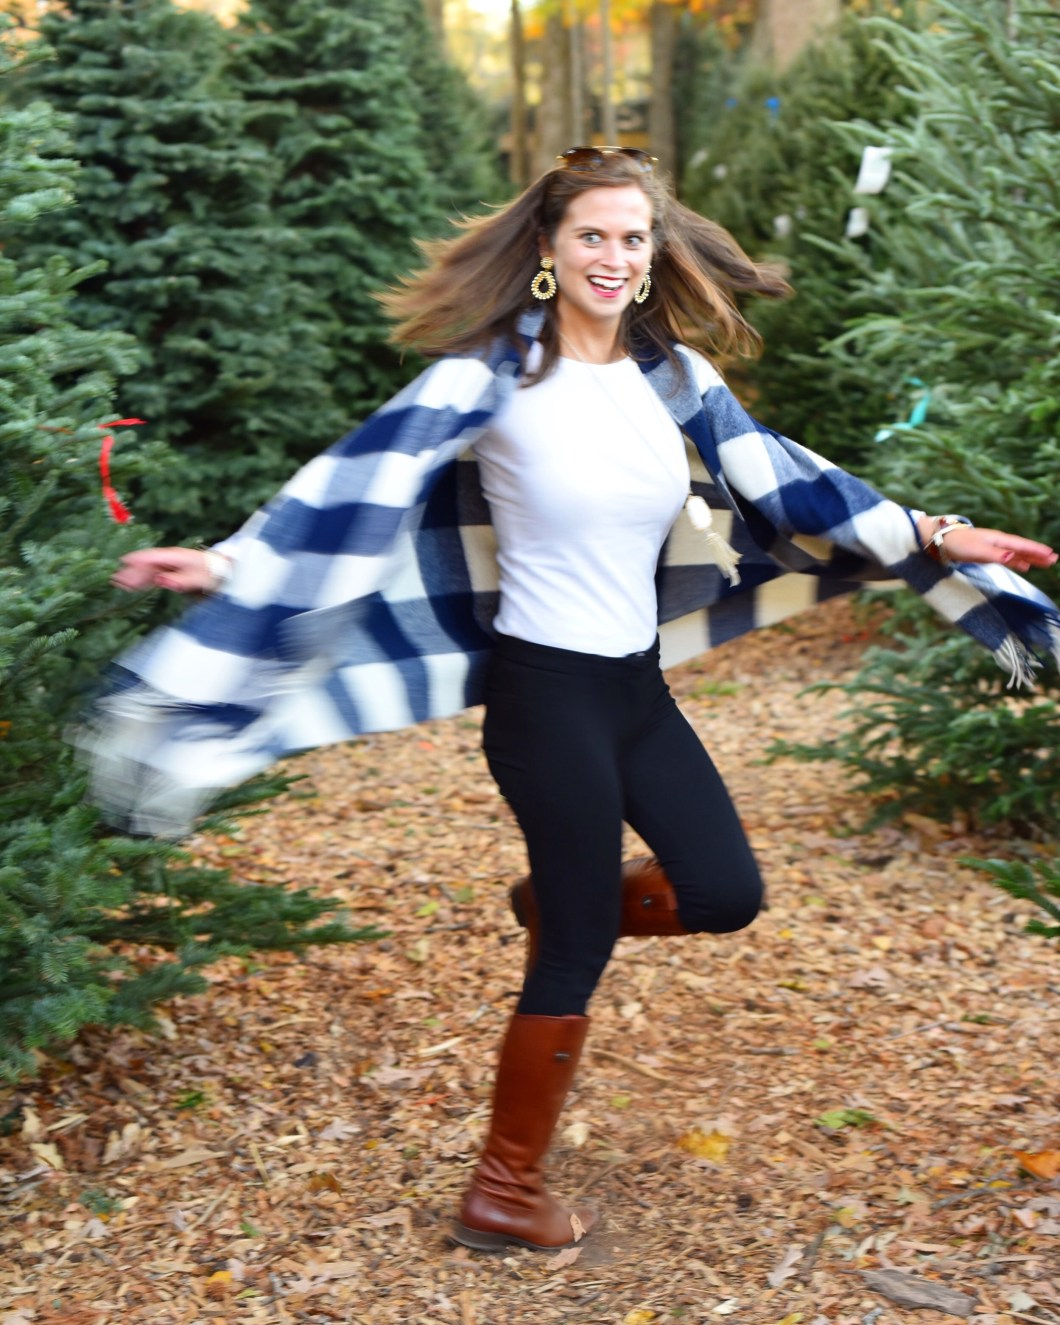 Twirling into the Holidays like...